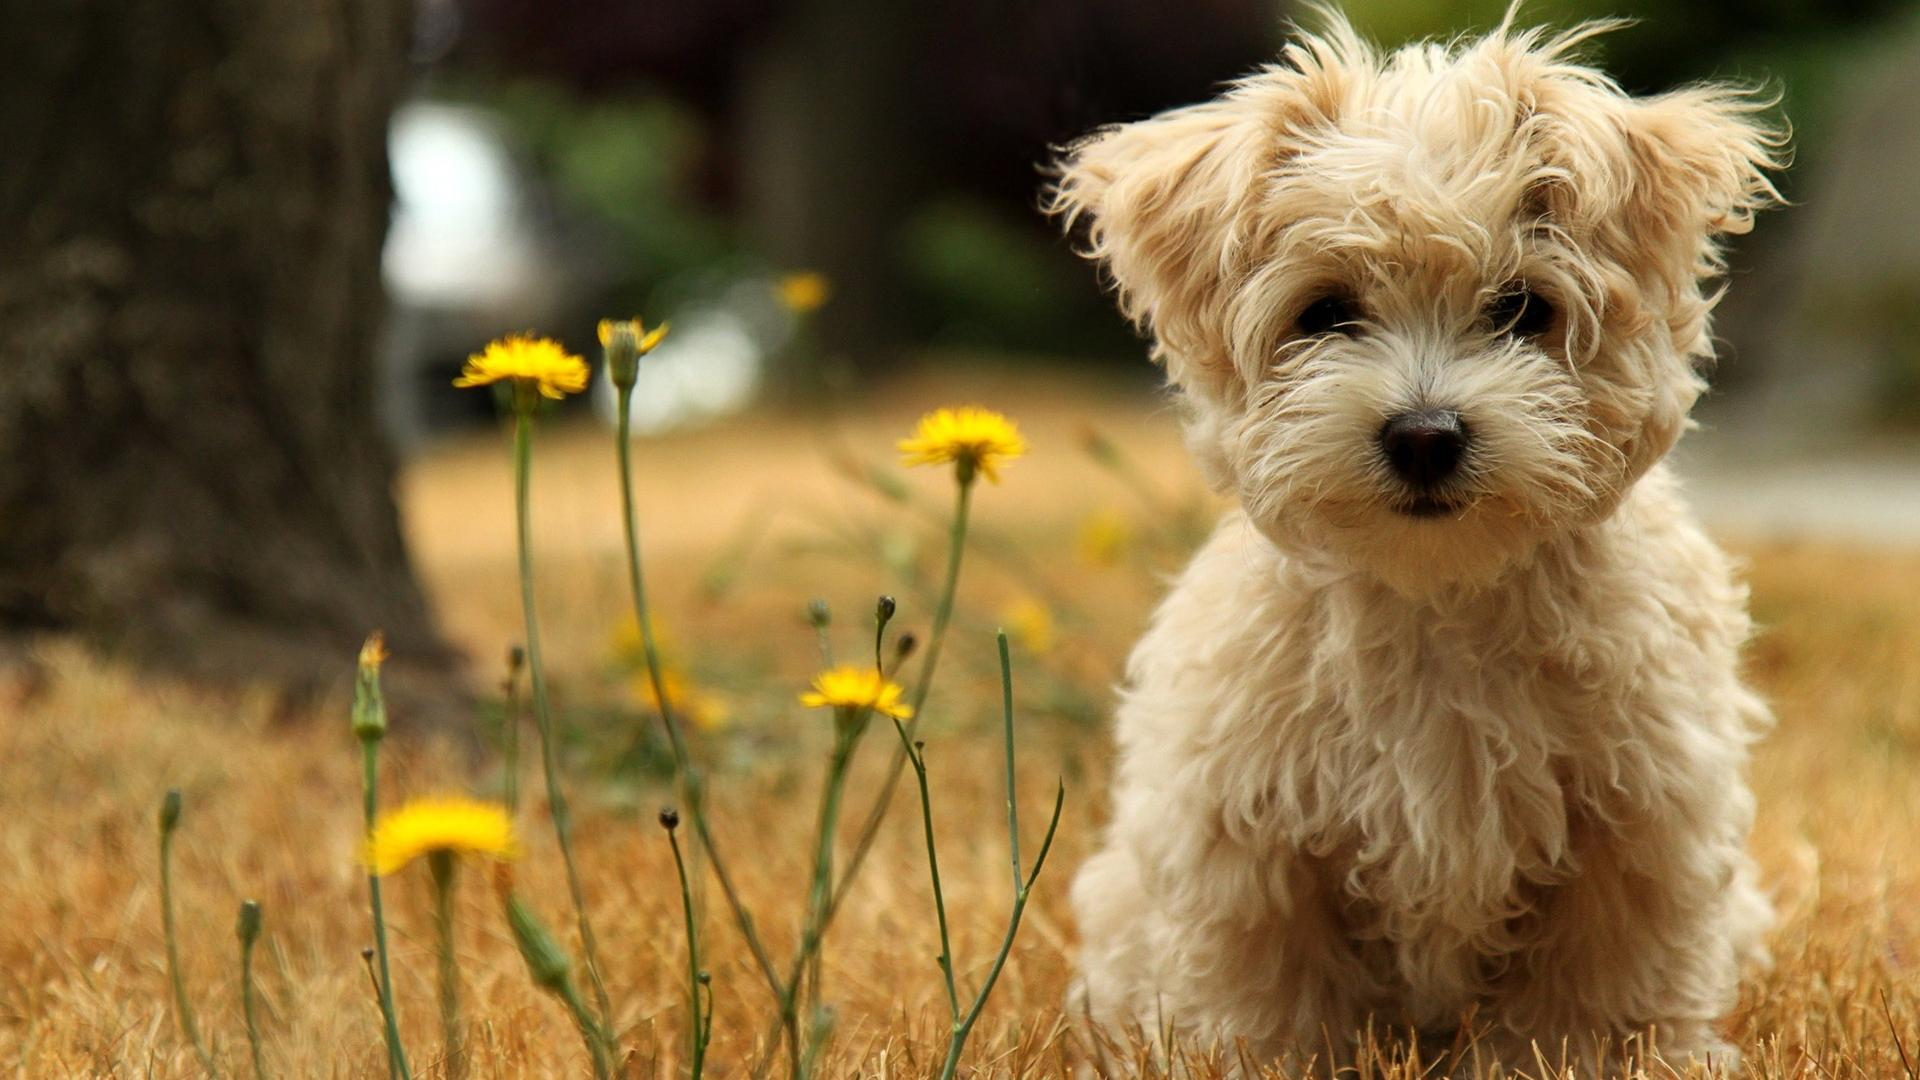 Cute Dog Pictures Background HD Wallpaper Cute Dog Pictures Wallpaper